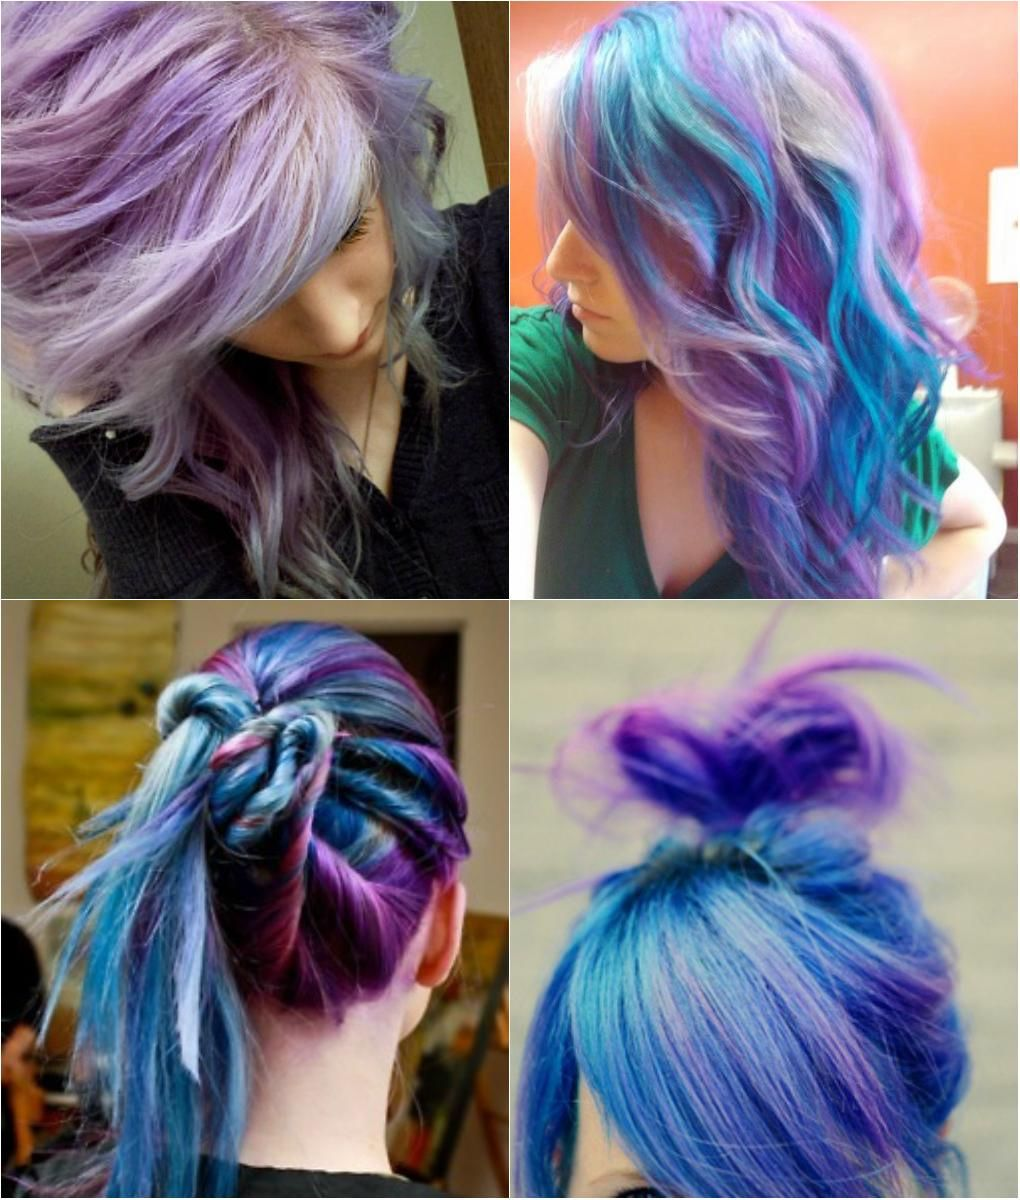 Pin By Annora On Hair Color Inspiration Pinterest Ombre Hair